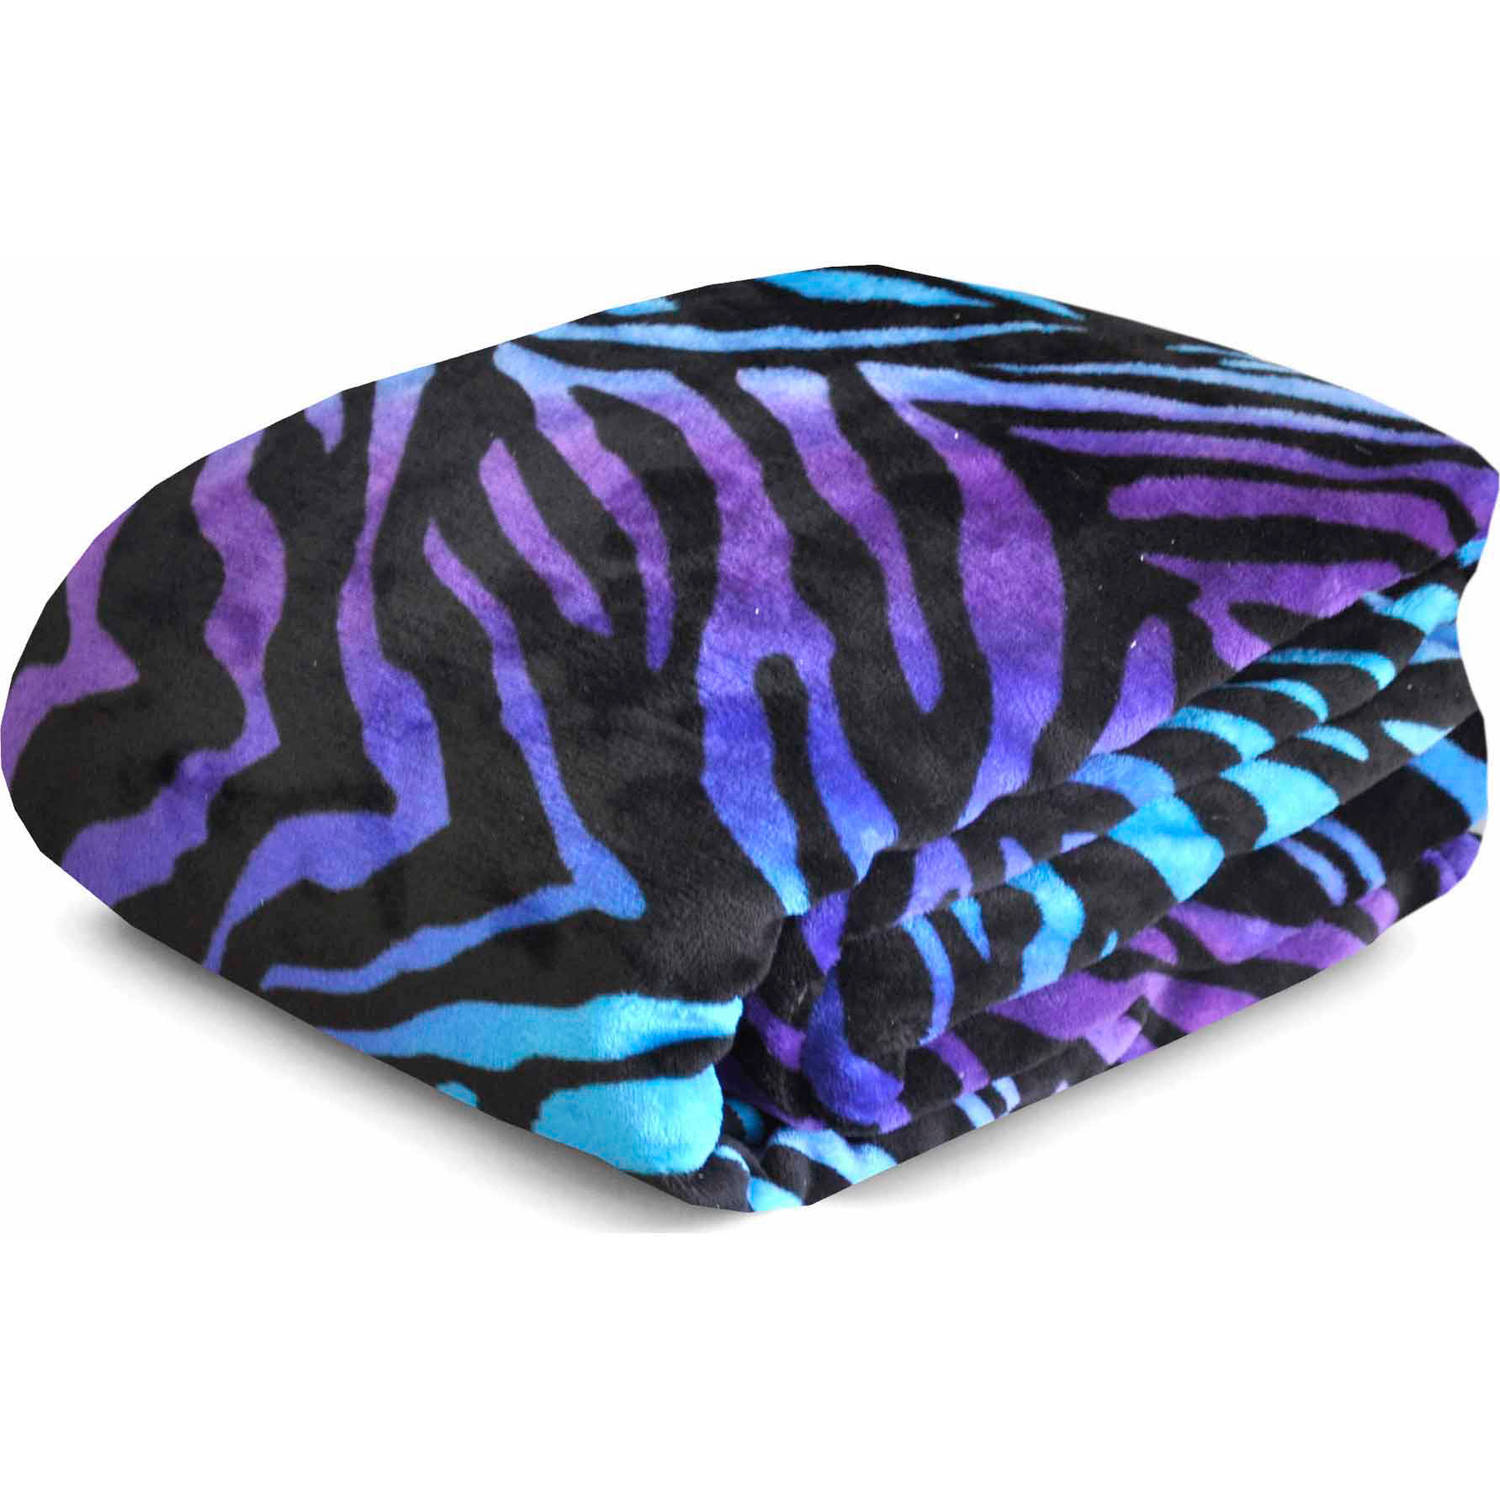 Your Zone Printed Plush Blanket Collection